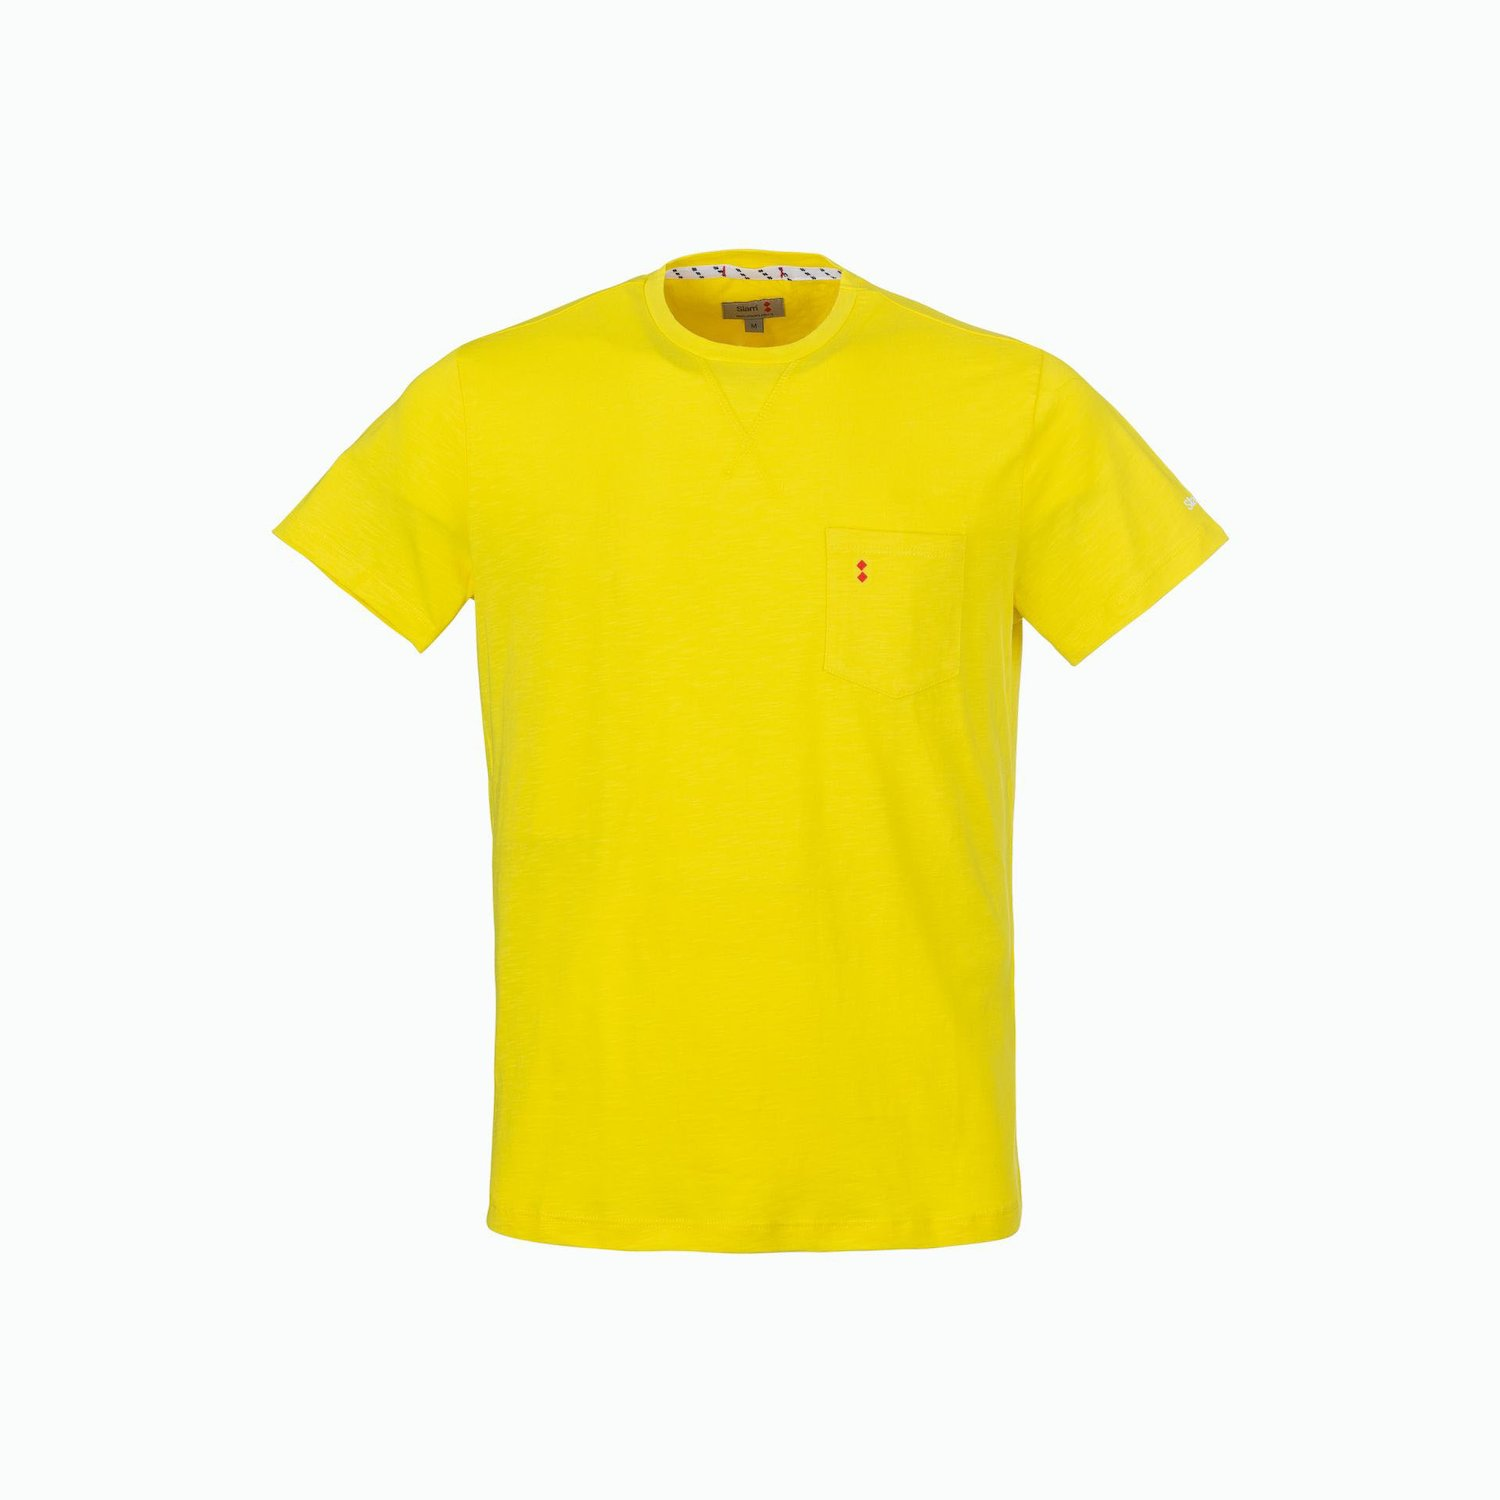 A105 T-Shirt - Blazing Yellow